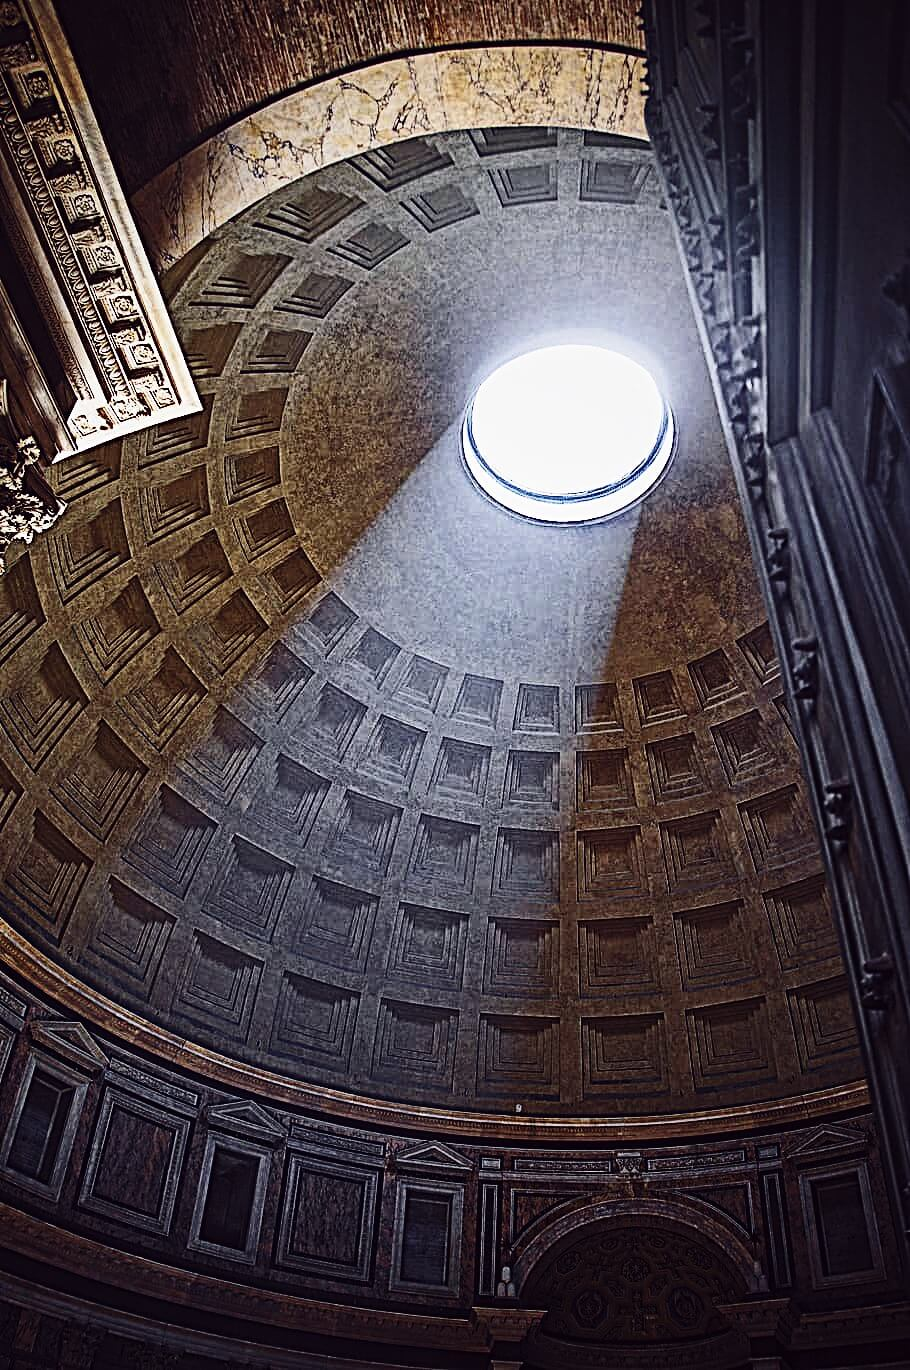 Rome in pictures: pantheon's oculus